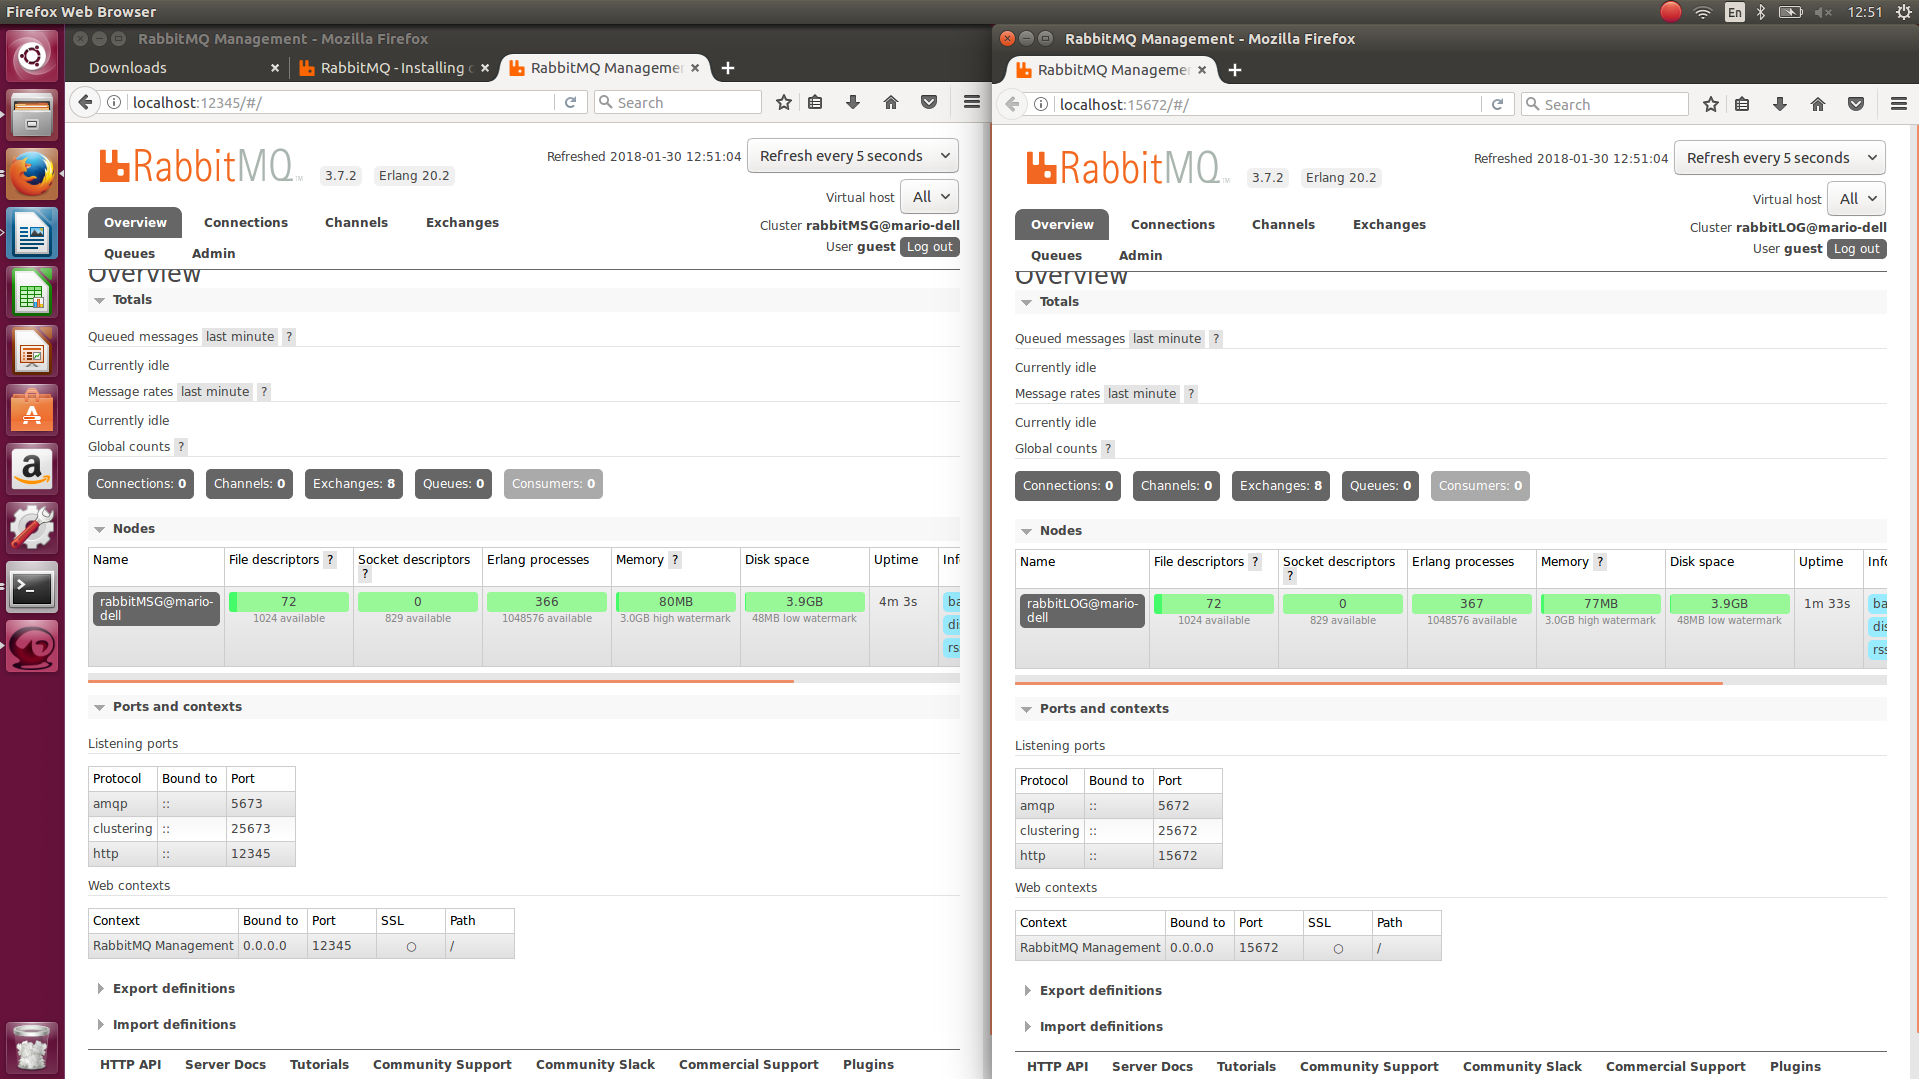 Running multiple RabbitMQ instances/servers on 1 machine